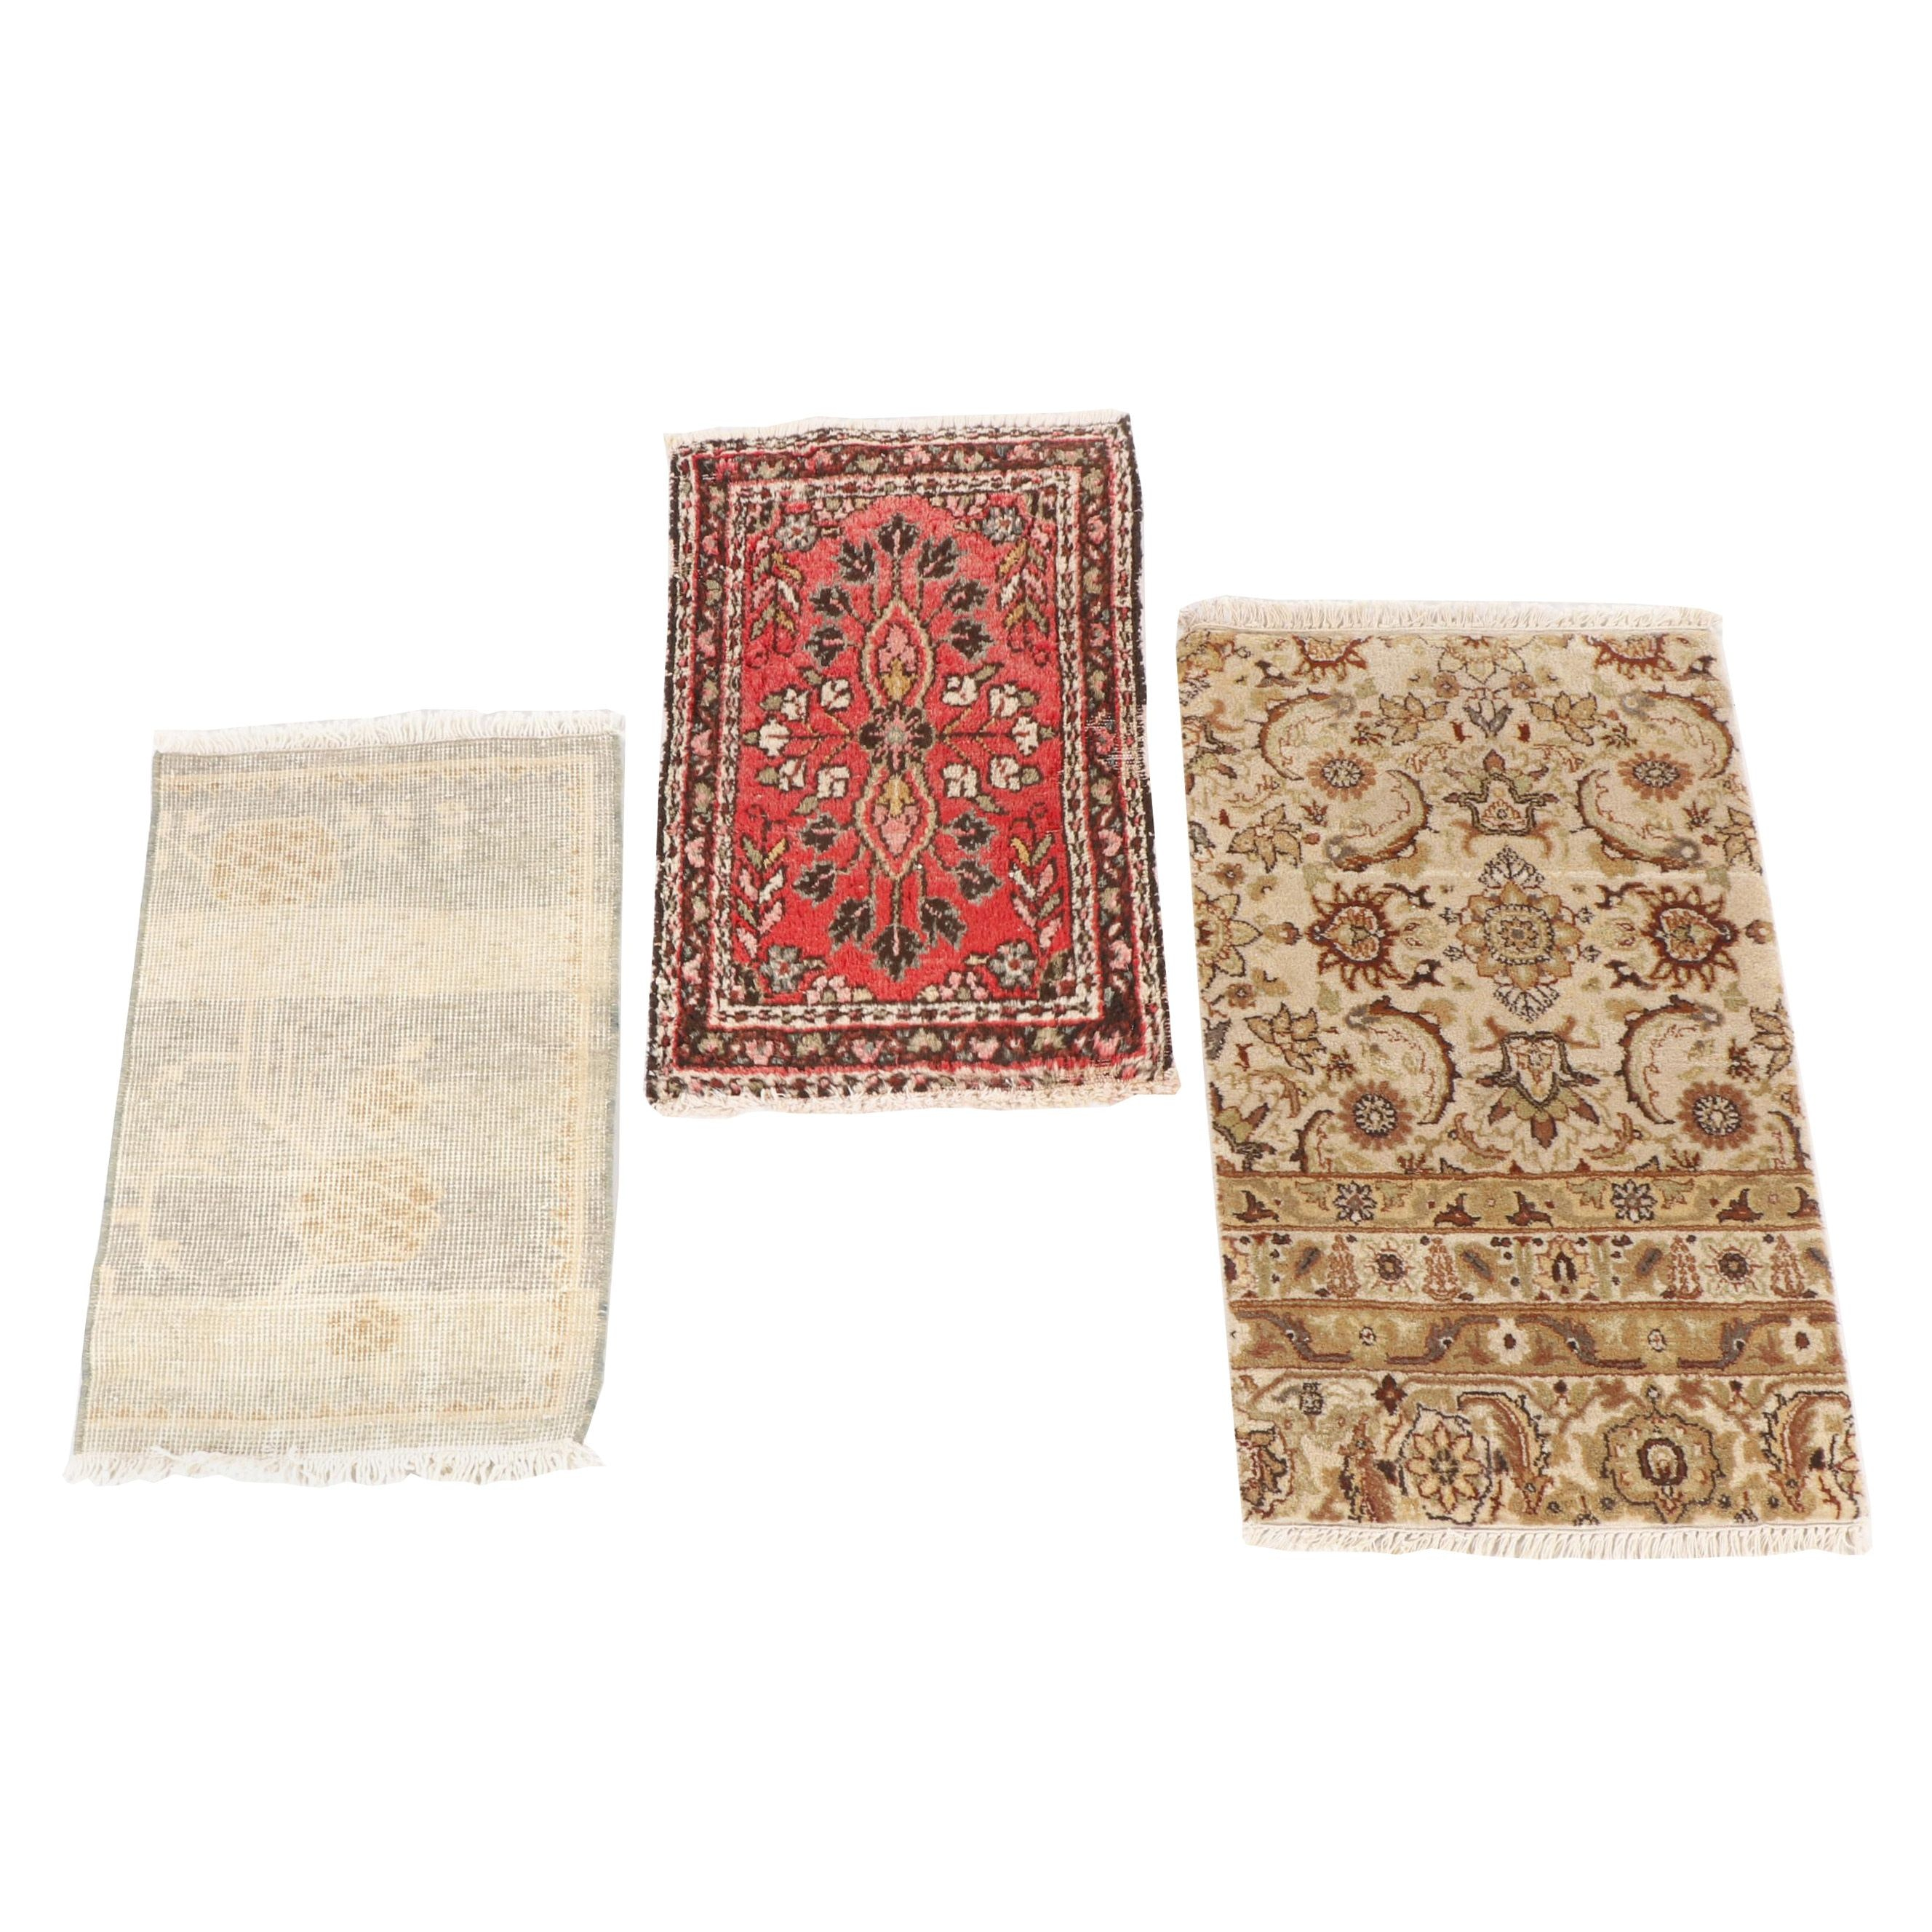 Hand-Knotted Indo-Kashan, Pakistani Peshawar and Persian Hamadan Wool Rugs